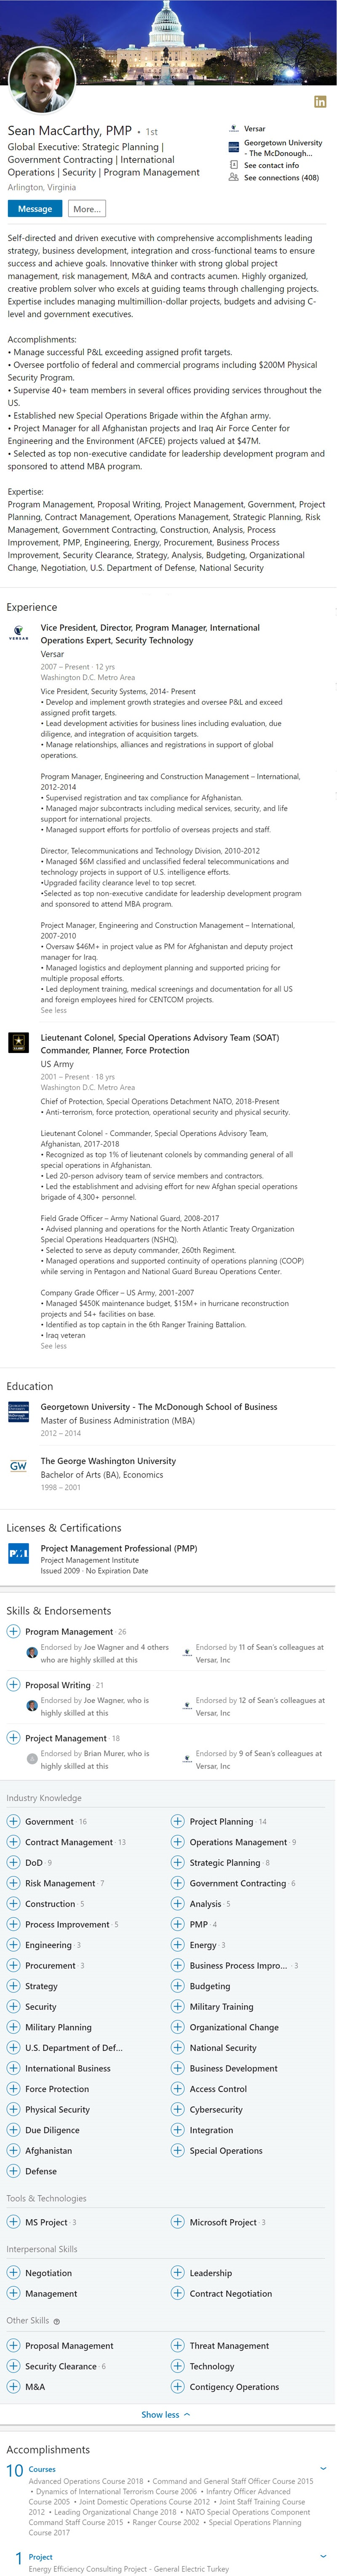 Executive LinkedIn profile example military combat security 2330